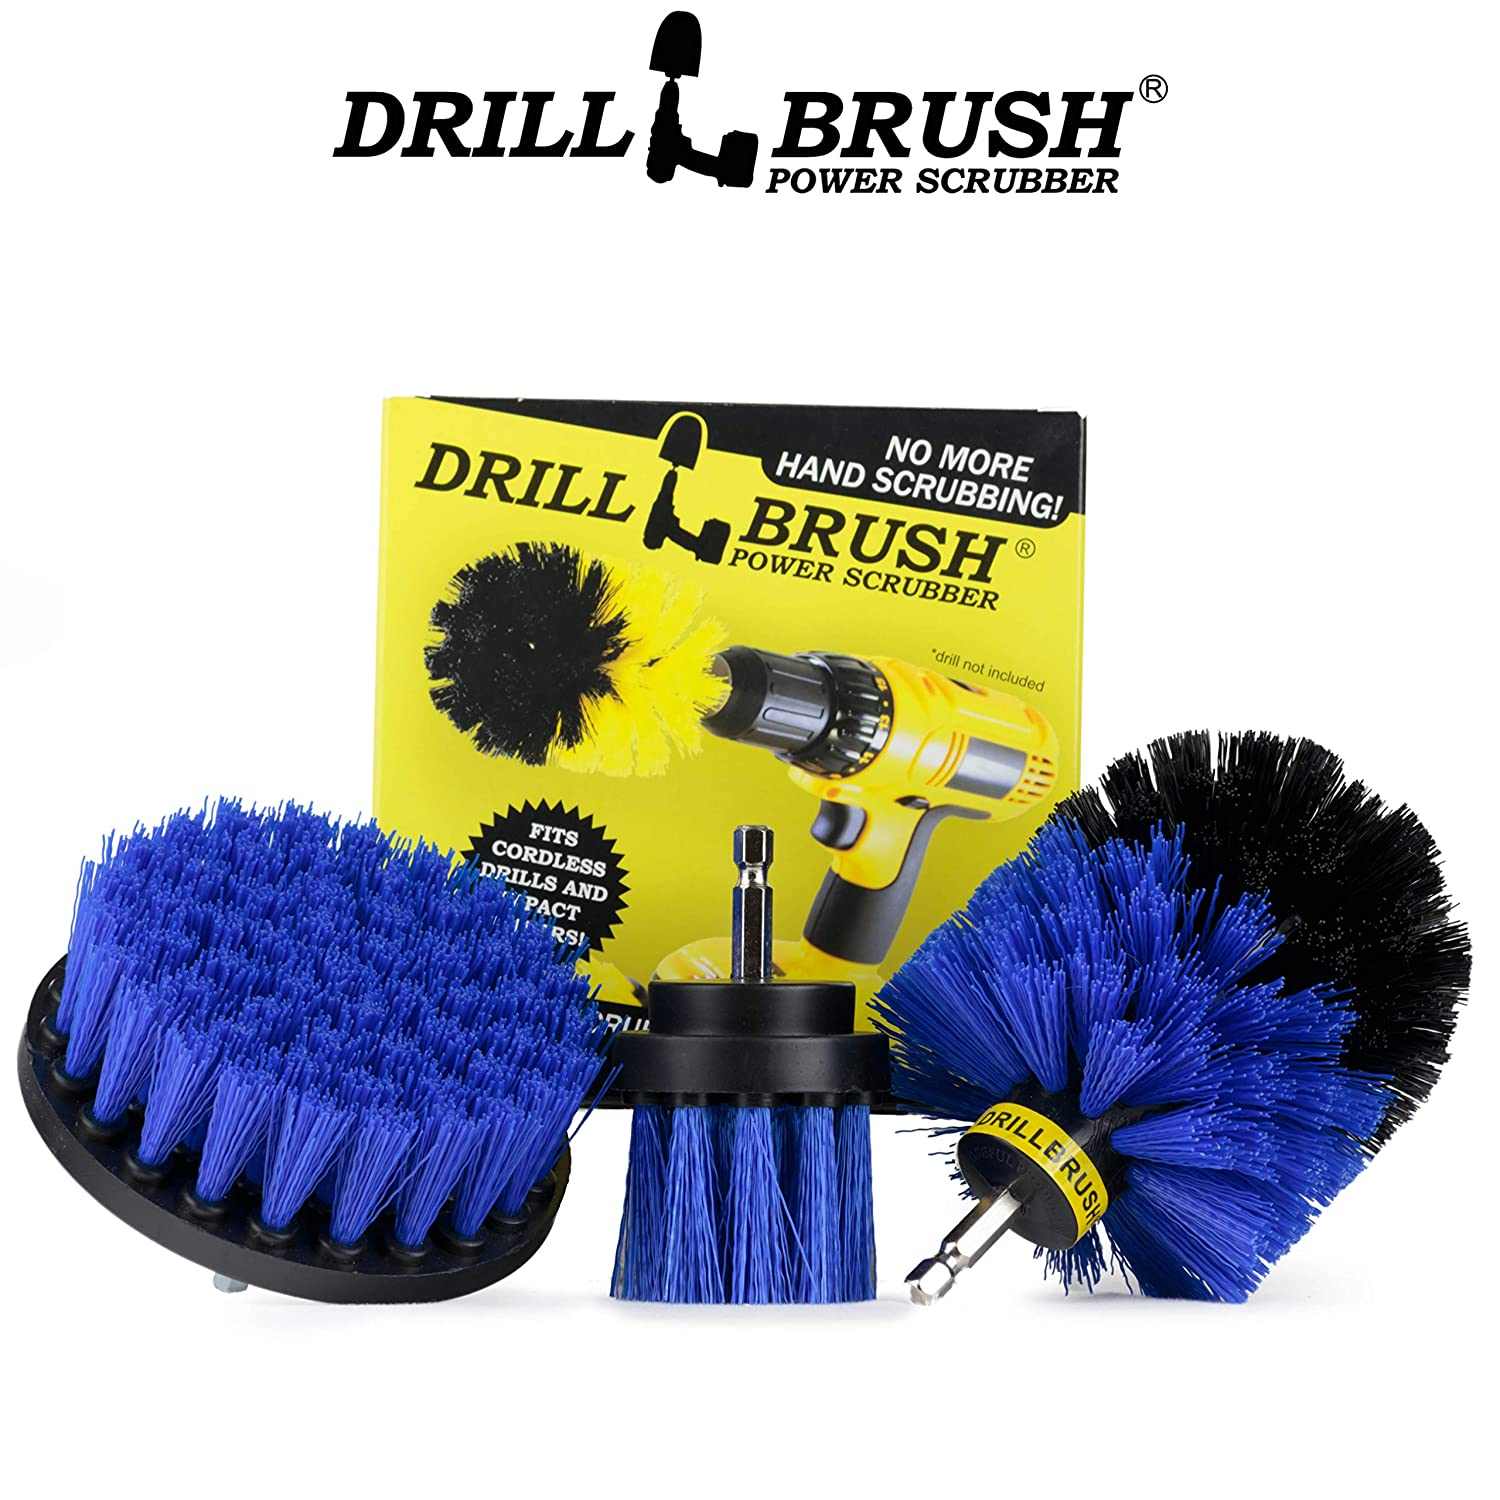 Grill Brush Drill Brush Kit Drill Brush Attachment for Cleaning Cleaning Drill Brush Set Original Drill Brush Power Scrubber Drill Brush Drill Brush Attachment Nylon Drill Brush